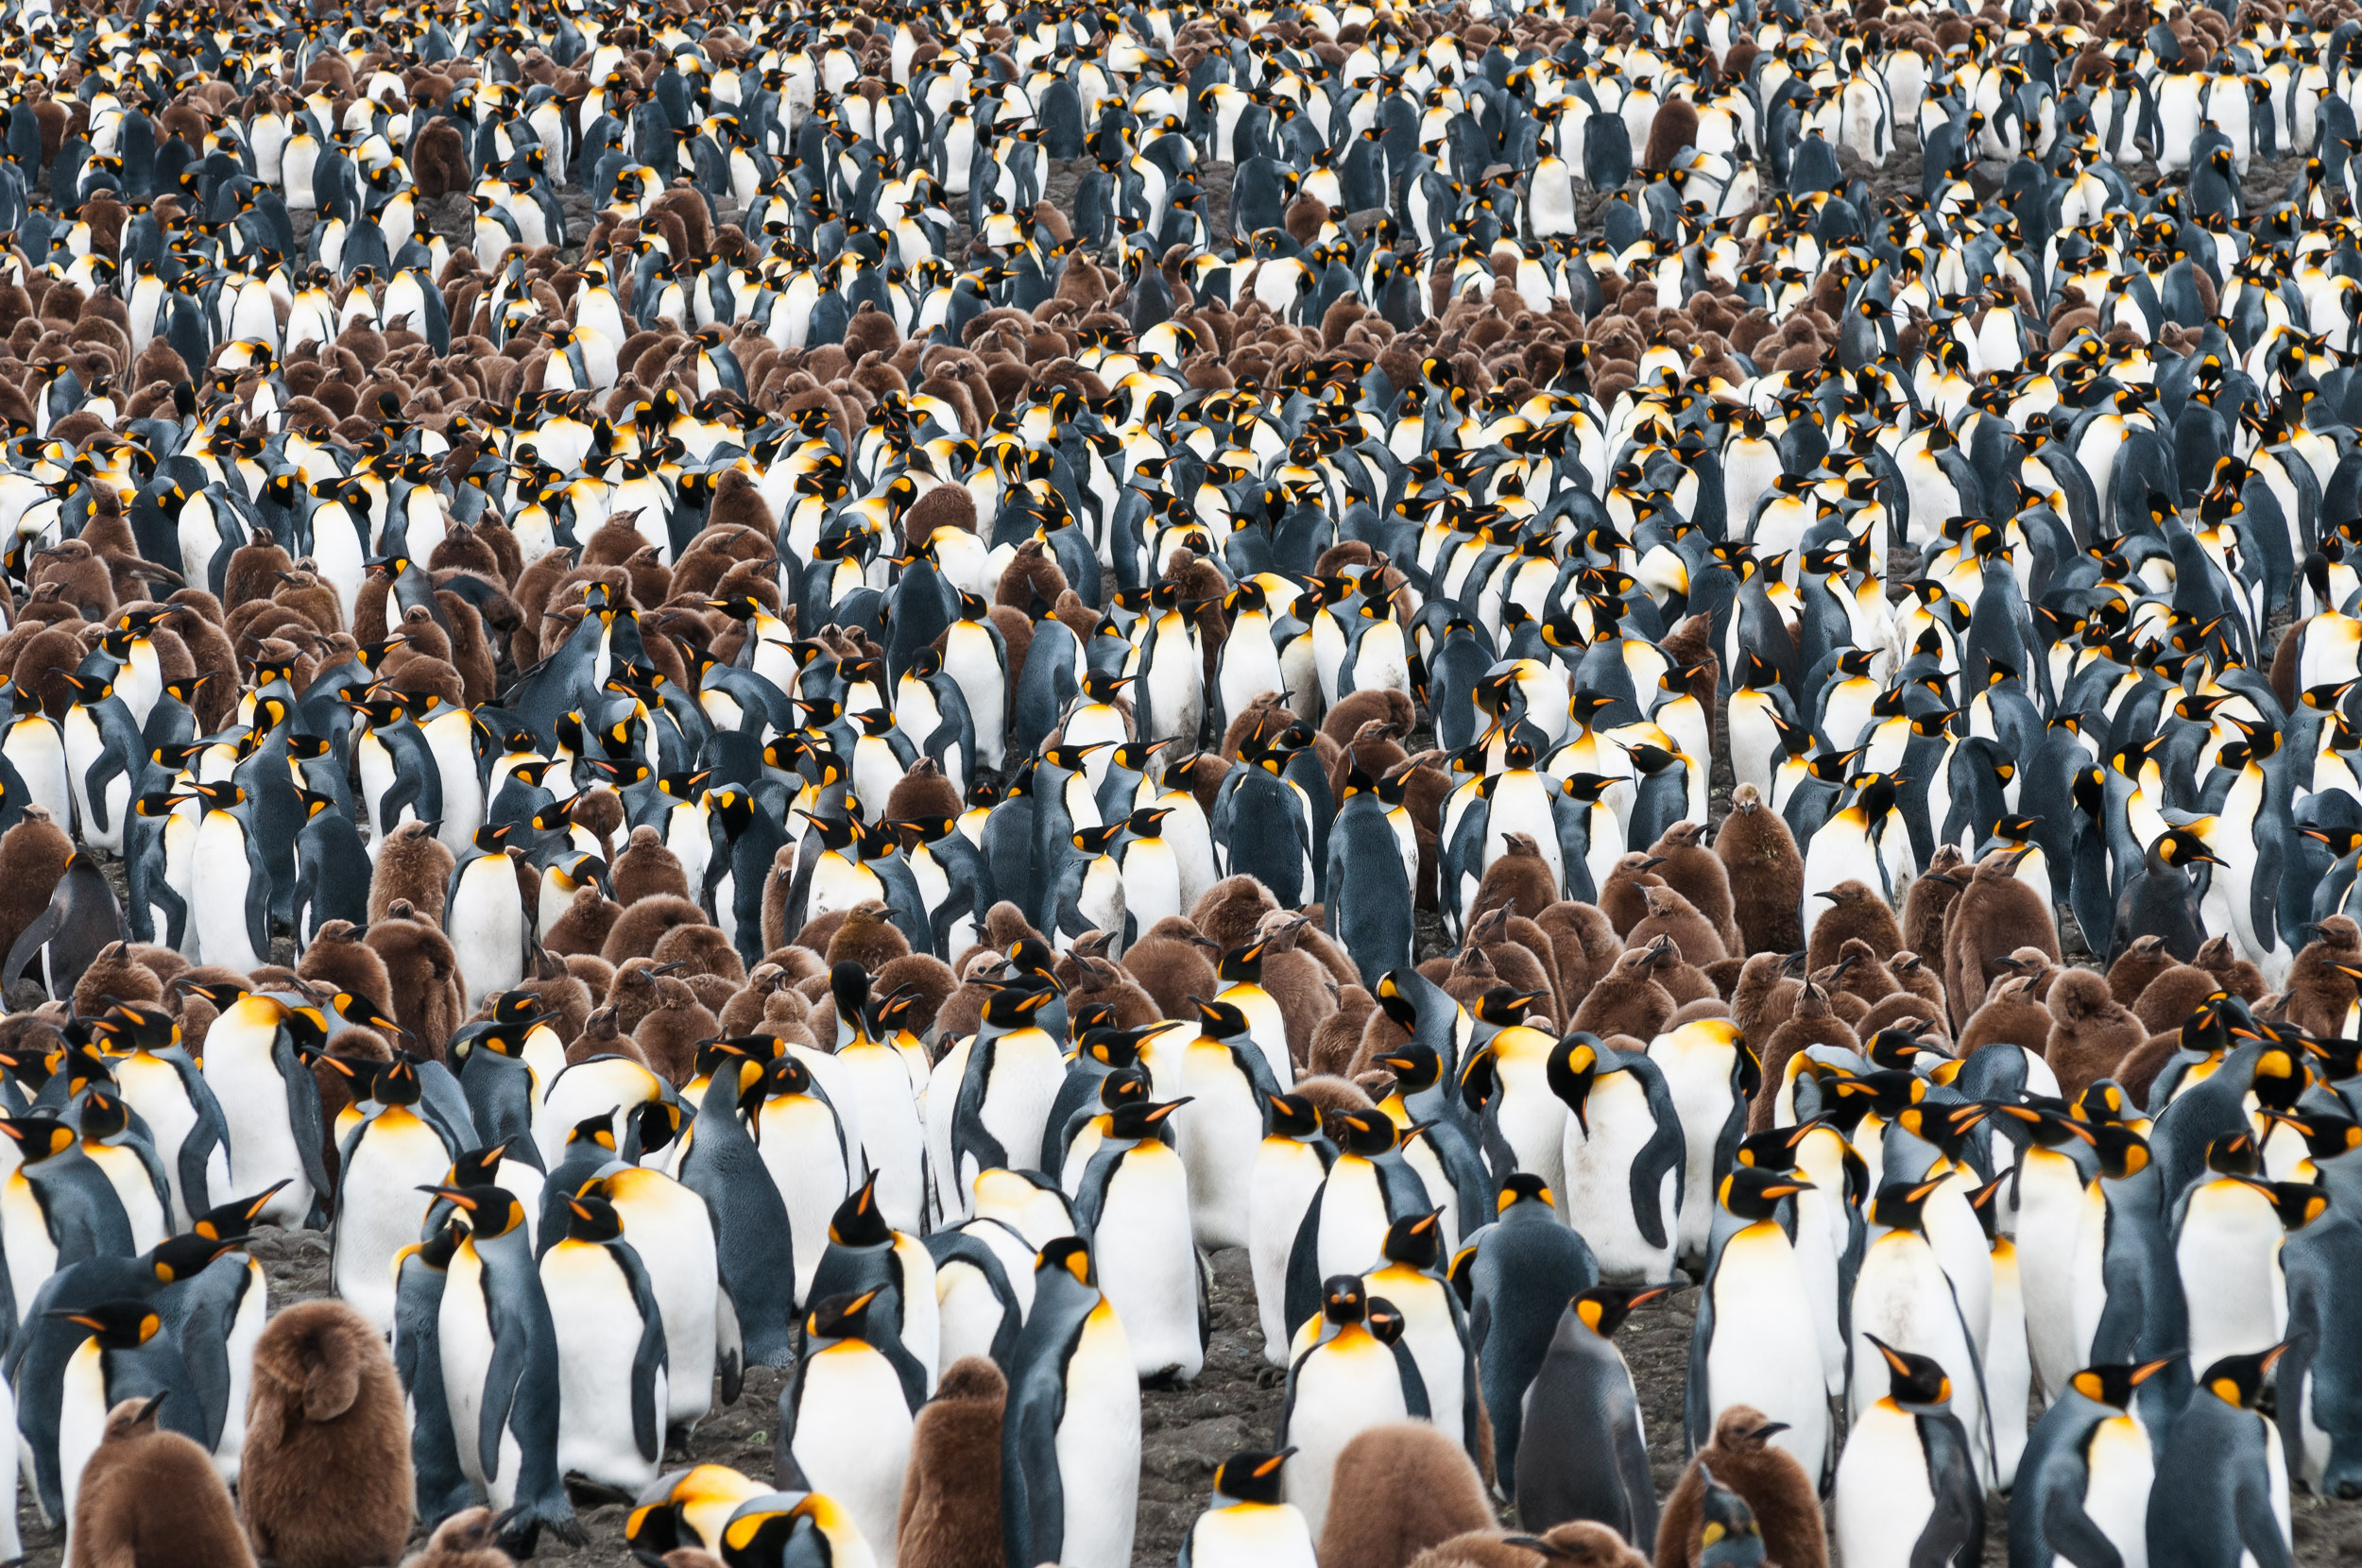 King Penguins (Aptenodytes patagonicus), Salisbury Plain, South Georgia. Salisbury Plain contains the second largest King Penguin (Aptenodytes patagonicus) on South Georgia, with an estimated 250,000 birds during moulting season.